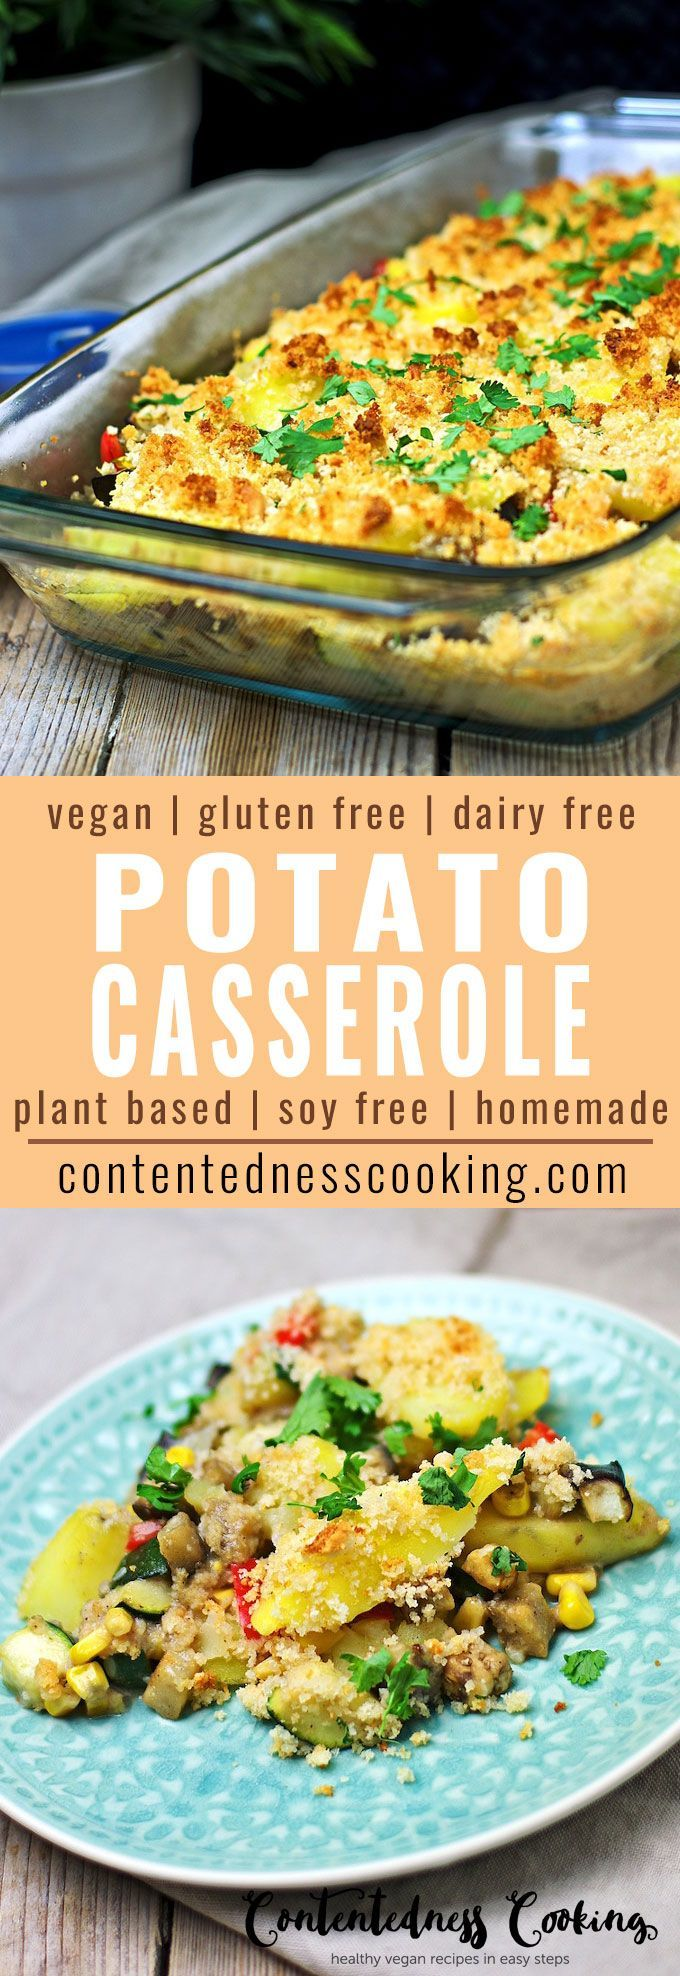 Vegan Potato Casserole